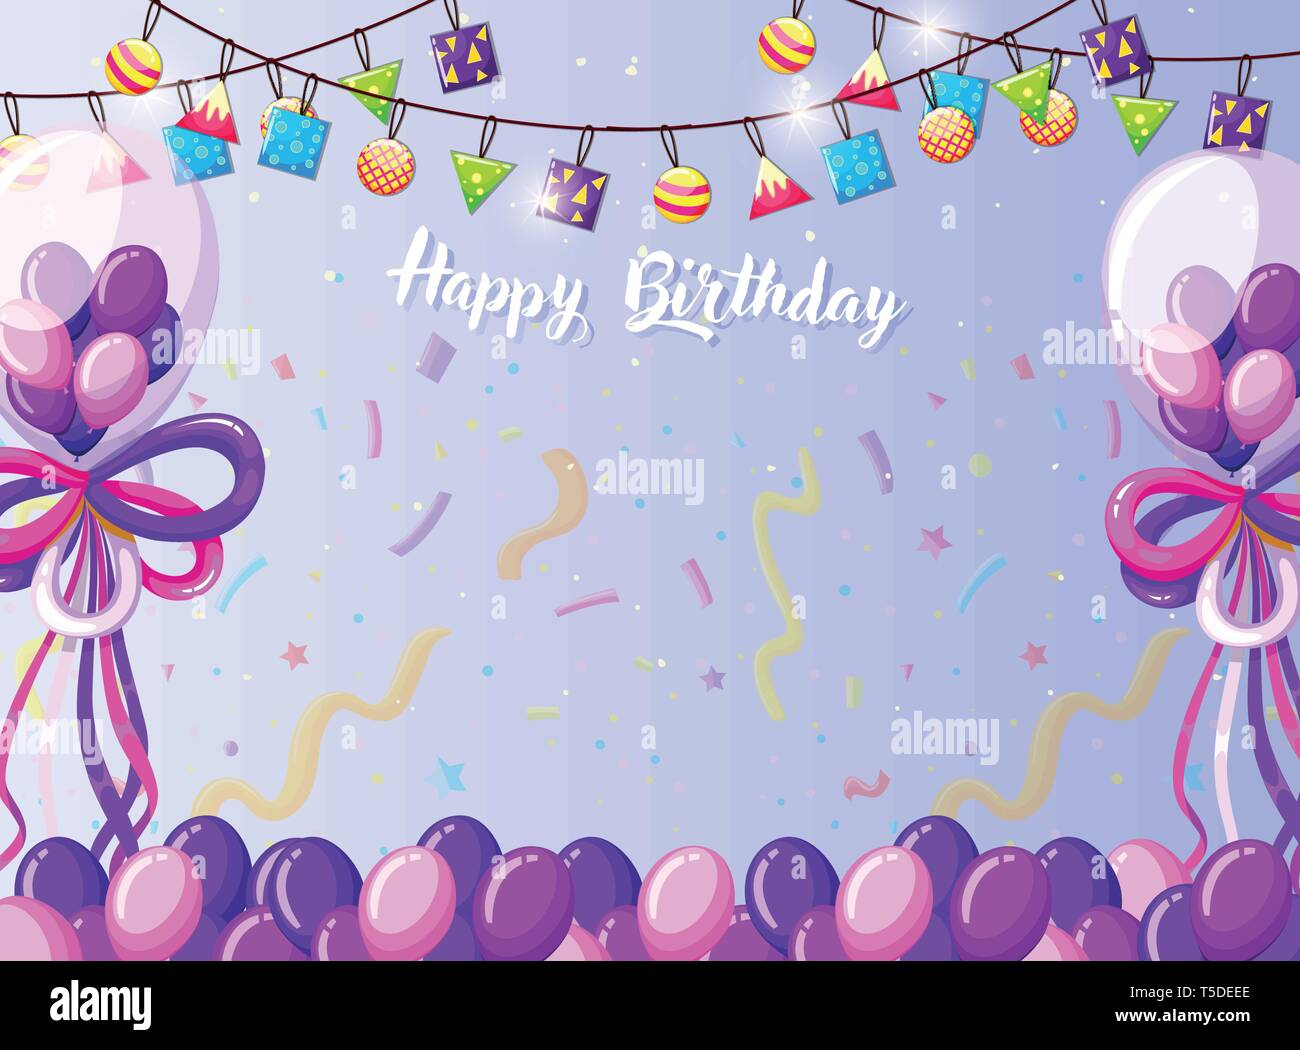 Template For Birthday Card from c8.alamy.com